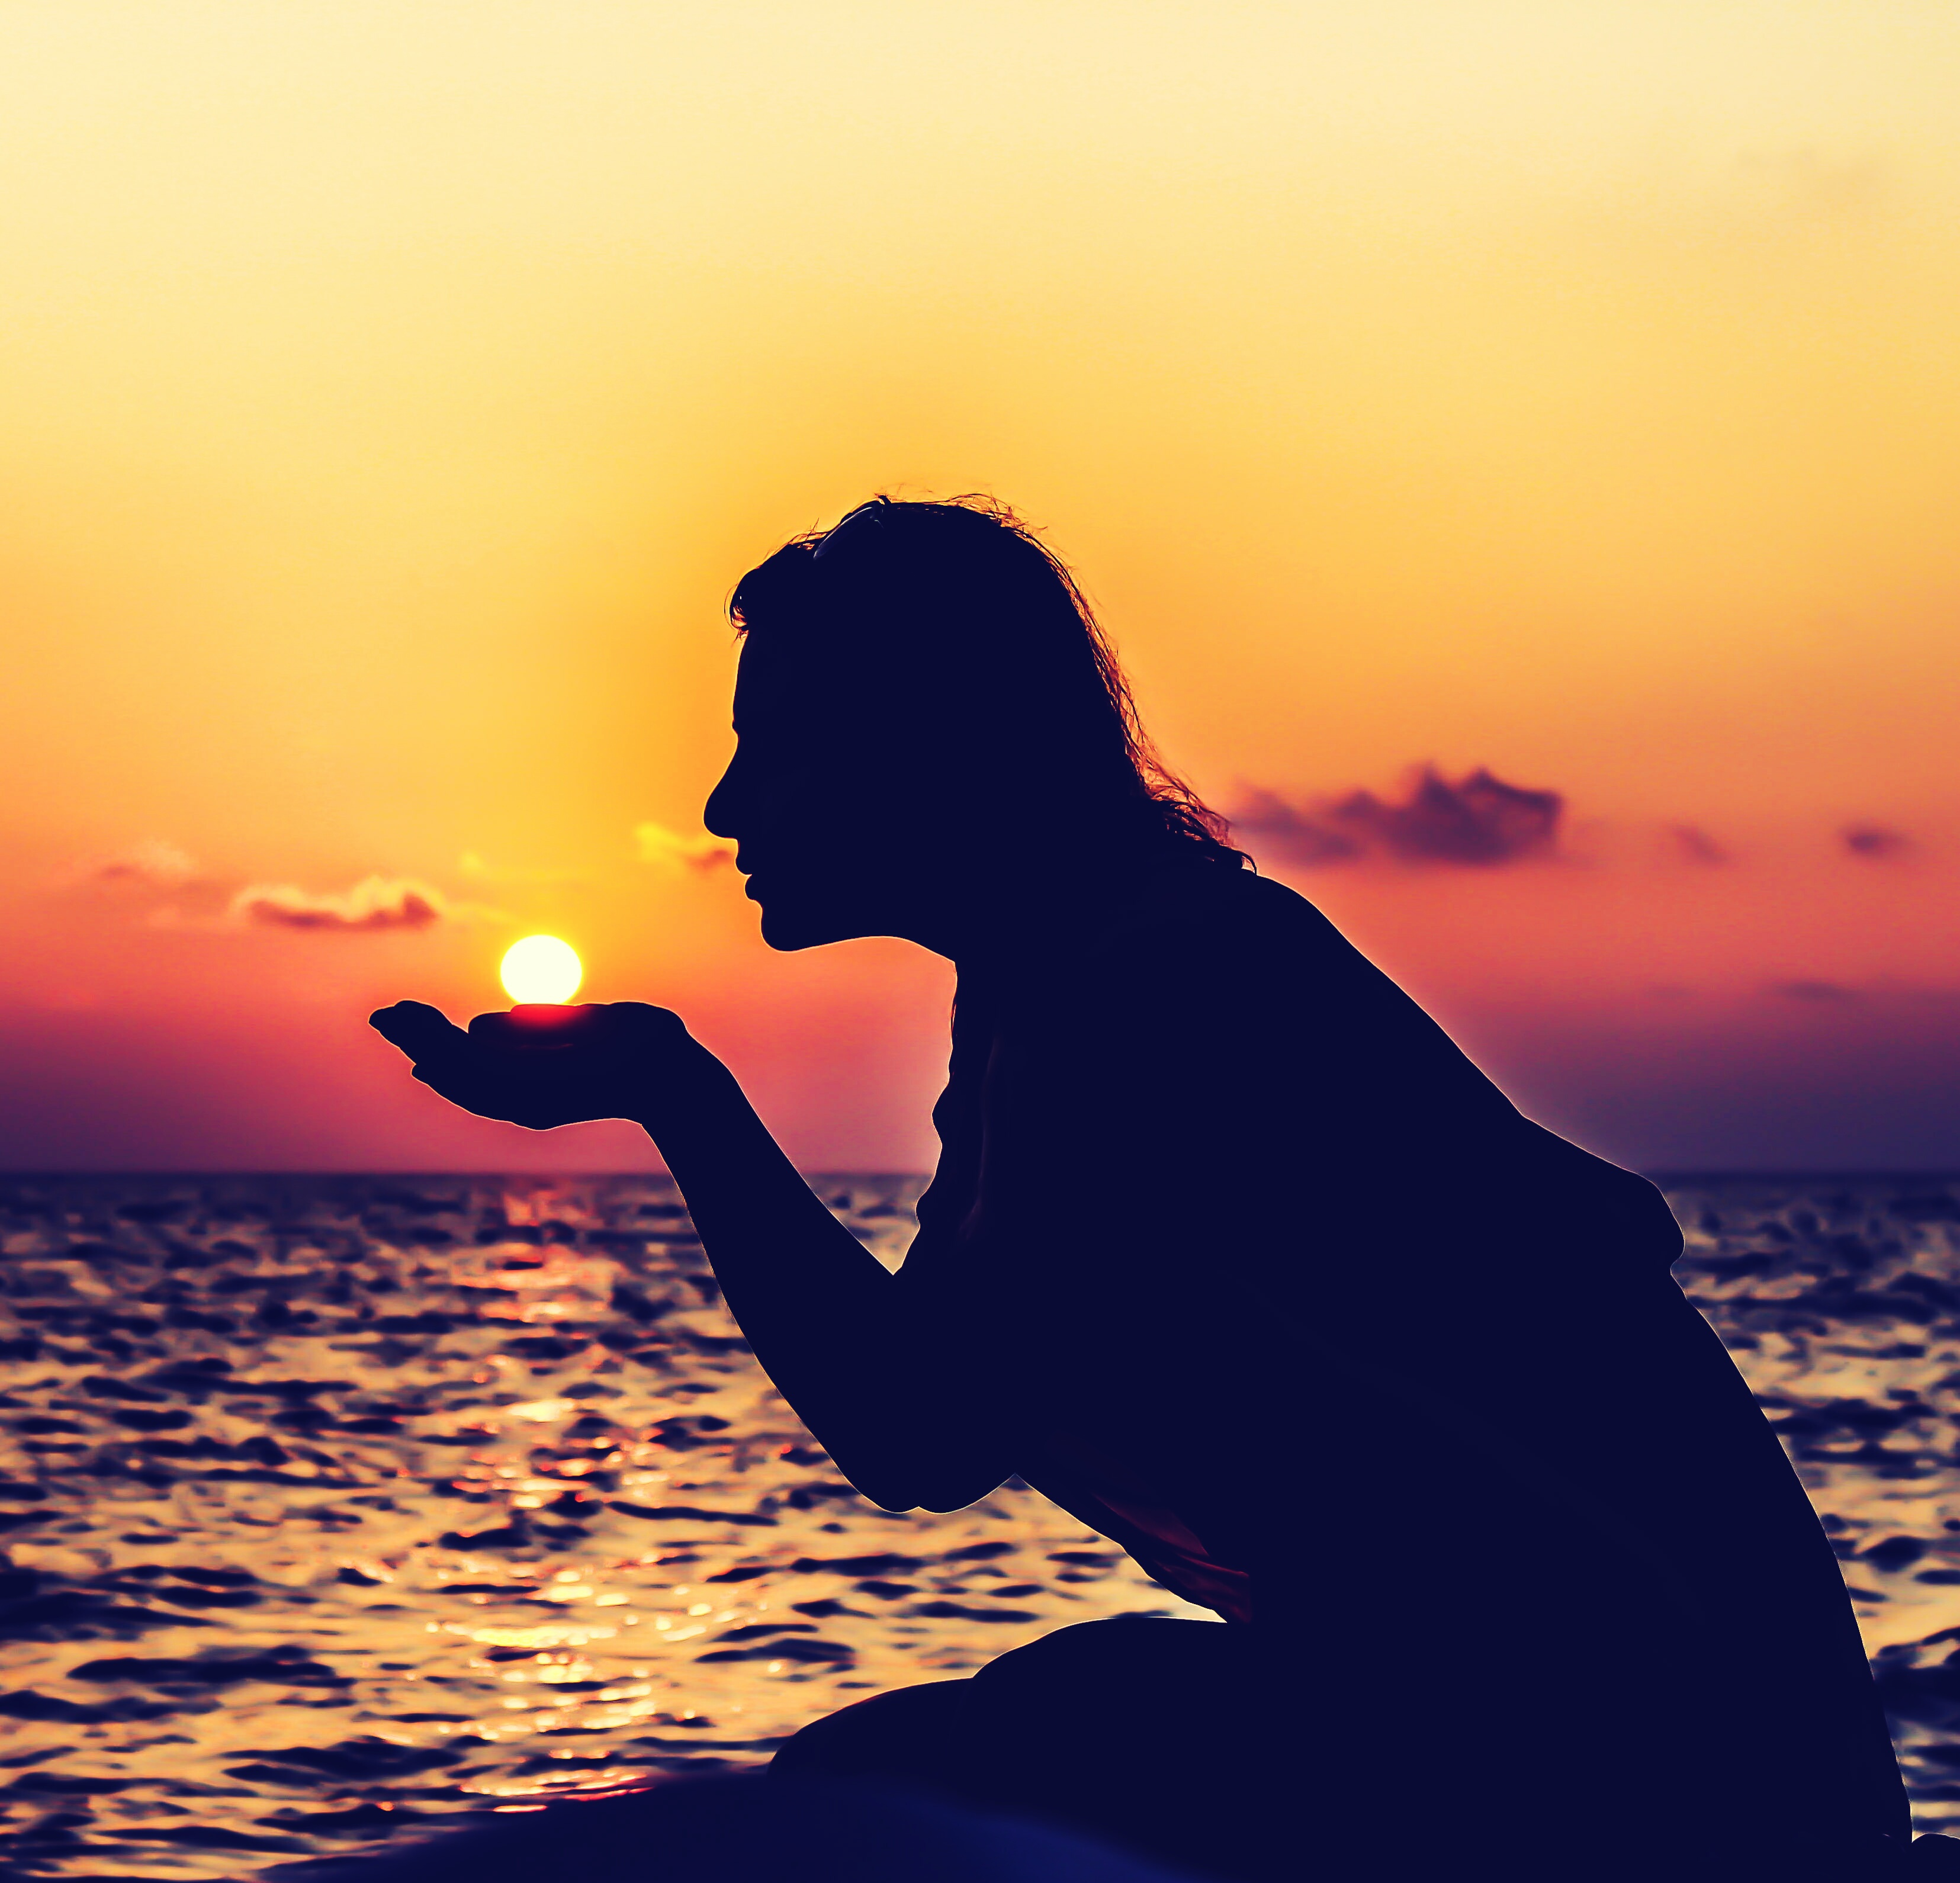 Wallpaper Surfer Girl Silhouette Of Woman Sitting On Dock During Sunset 183 Free